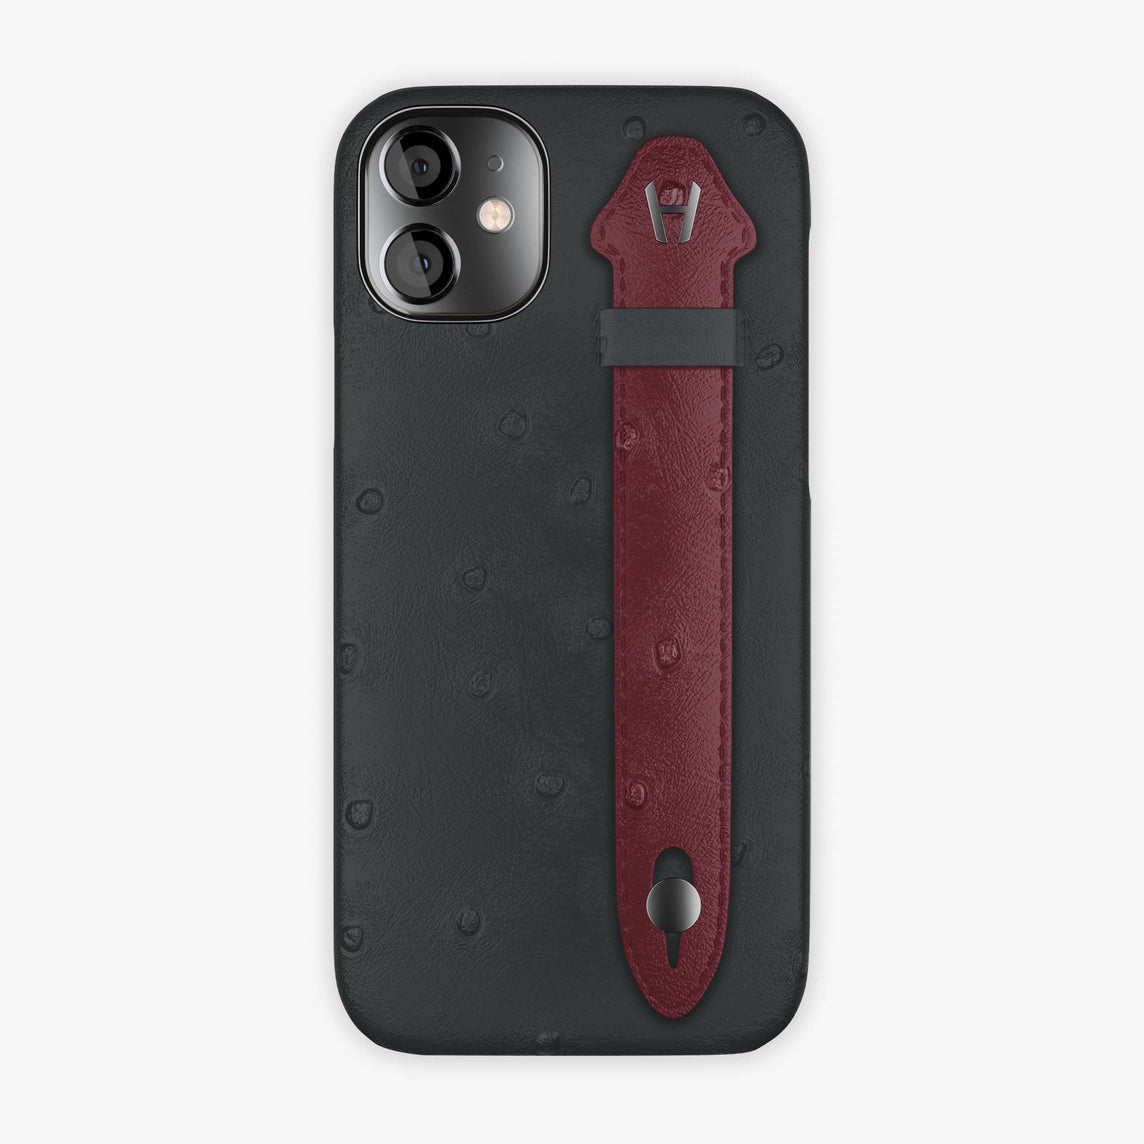 Ostrich Side Finger Case iPhone 12 Mini | Anthracite/Burgundy  - Black